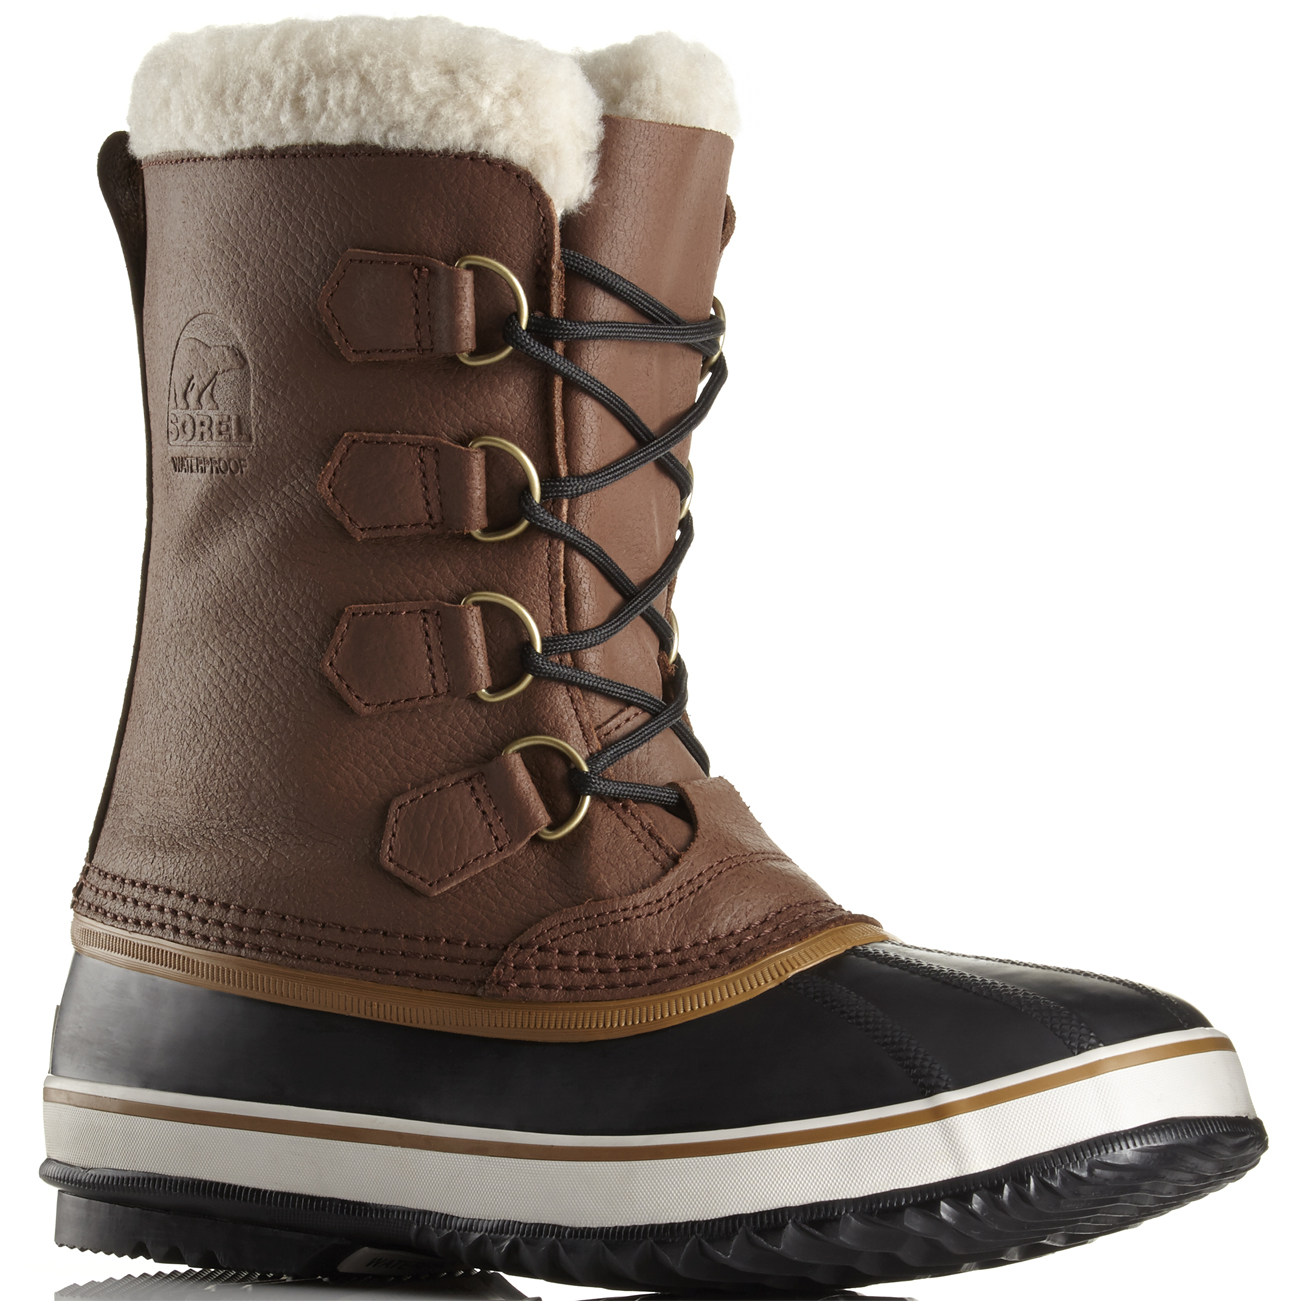 Mens Sorel 1964 Pac Walking Winter Rain Snow Waterproof